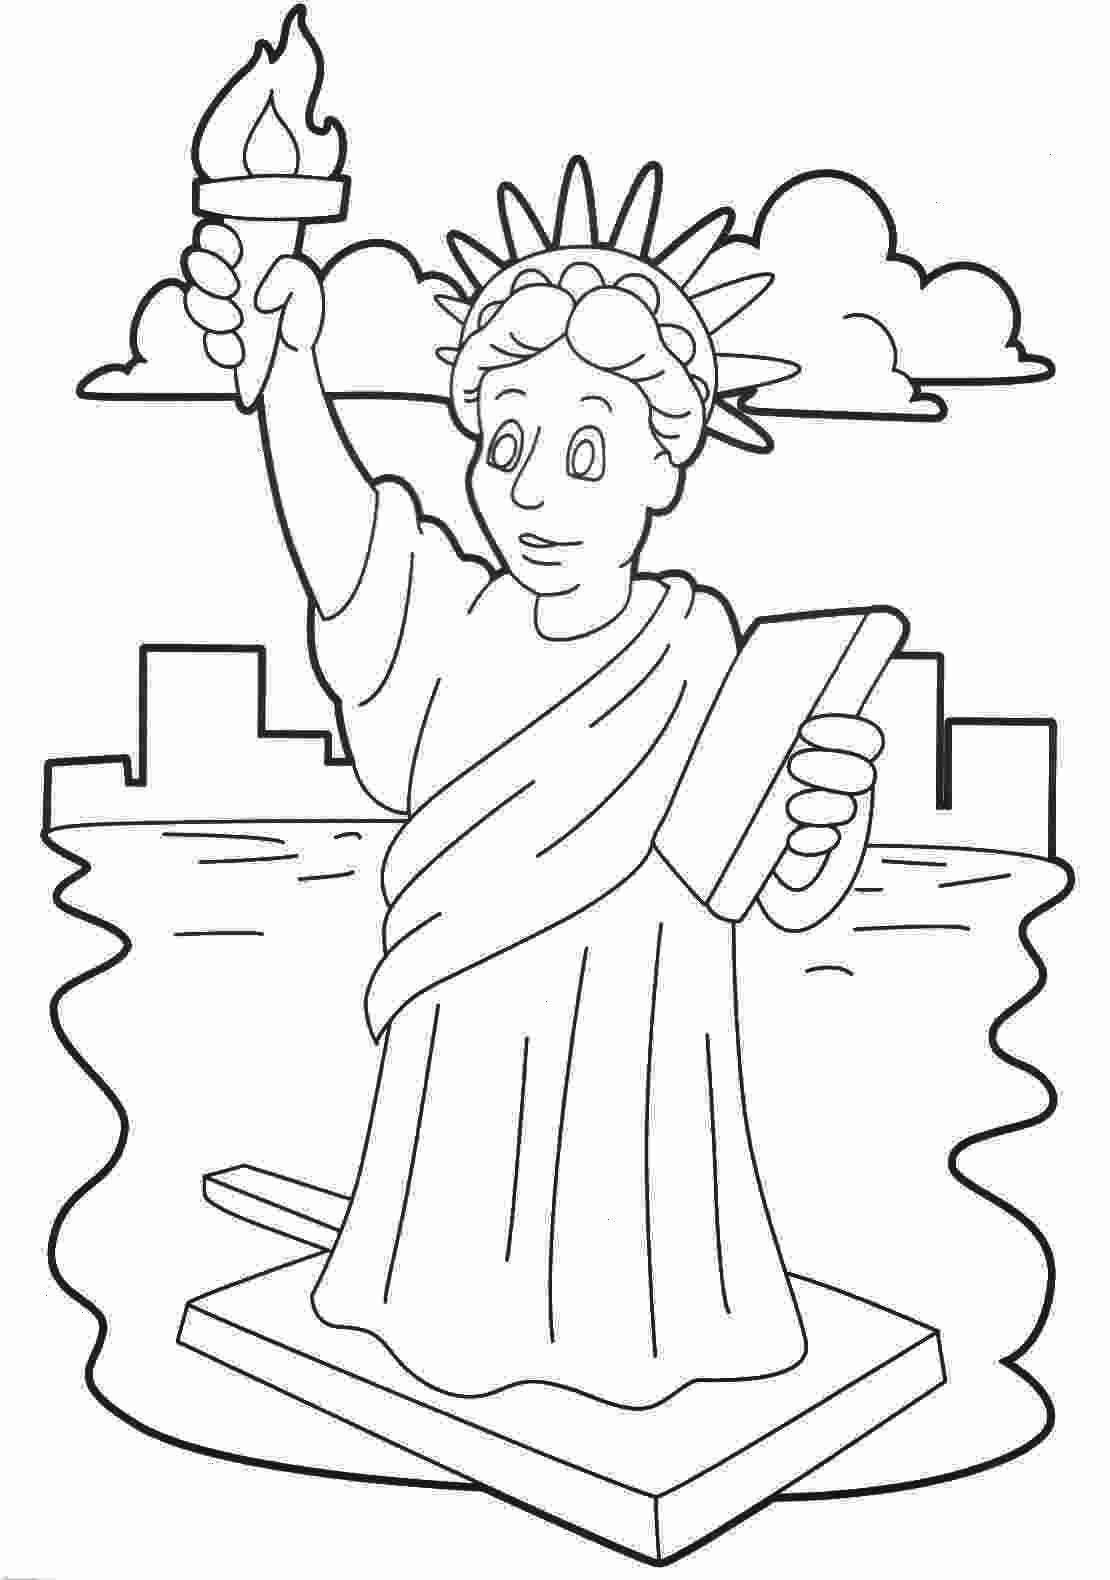 coloring pages Cute Coloring Pages Statute of liberty coloring pages  More than 100000 Amazing Coloring sheets  Cute Coloring Pages Statute of liberty coloring pages  Mor...